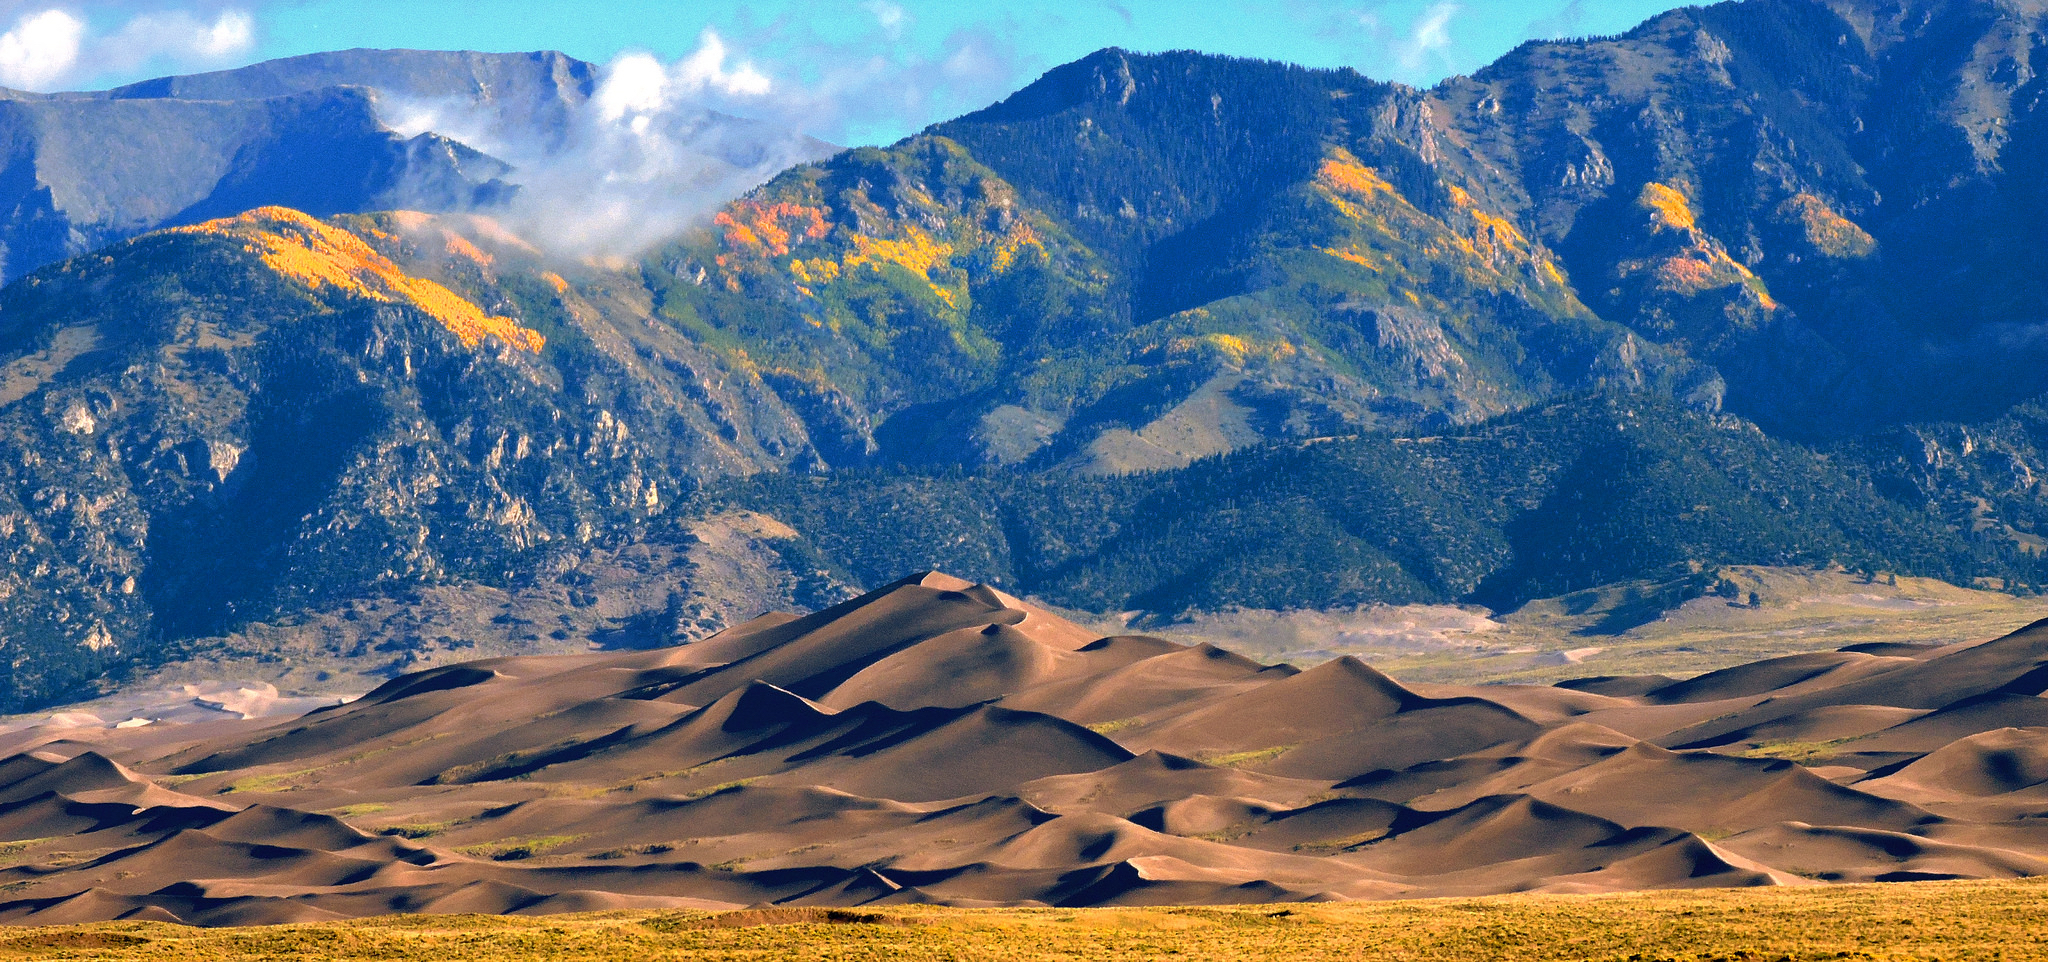 How Colorado's Great Sand Dunes National Park is using drones ...